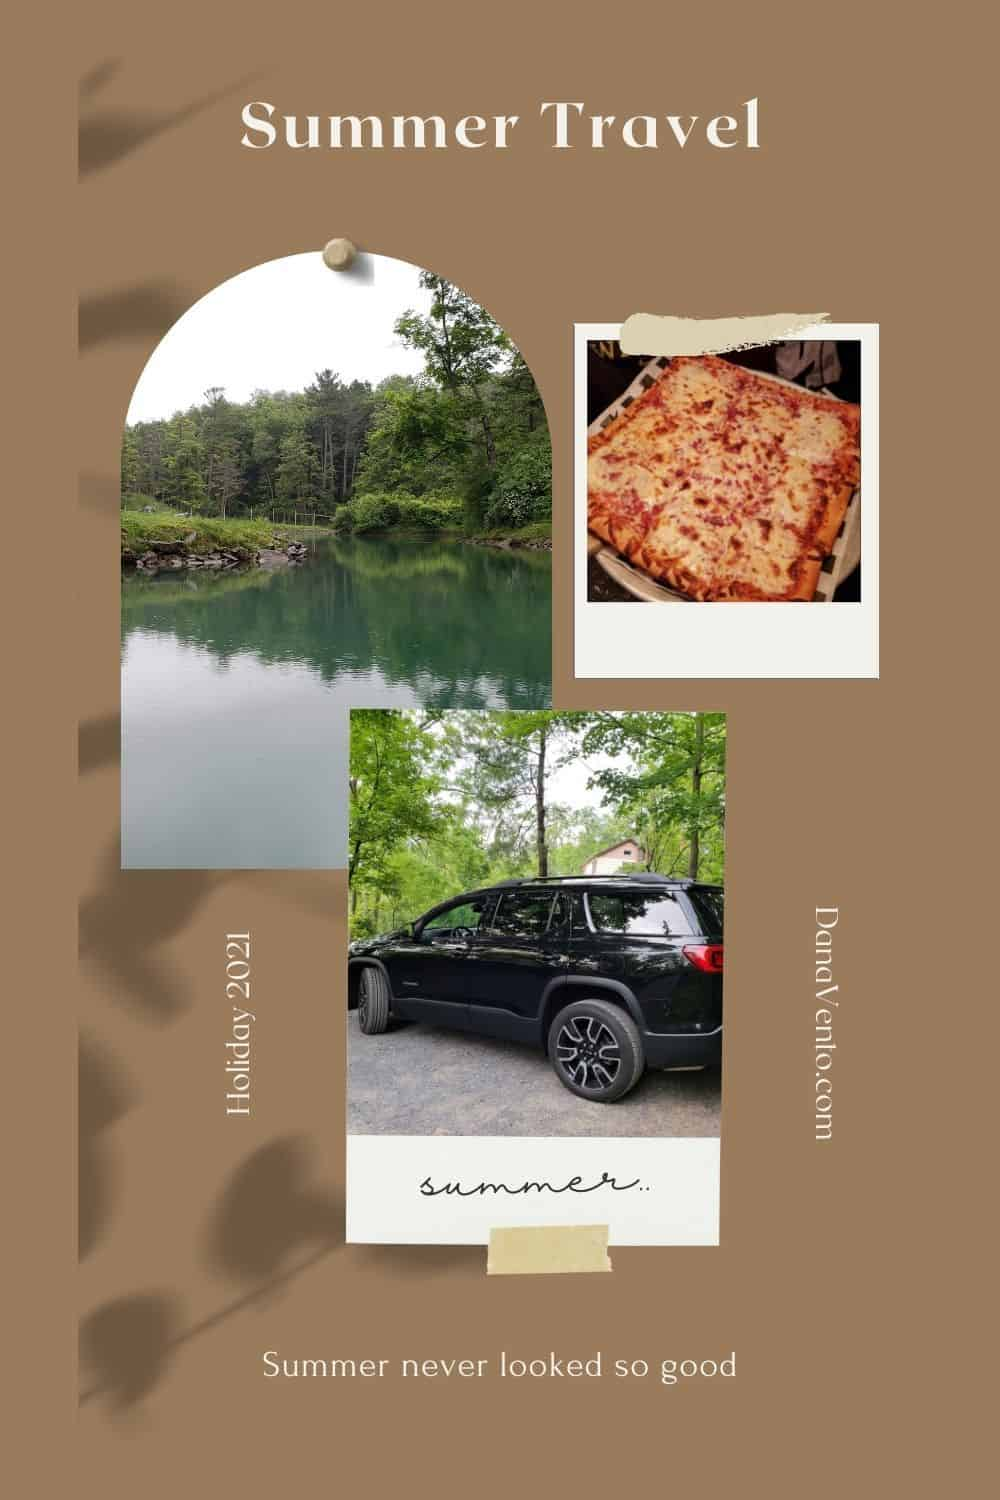 summer travel car and food